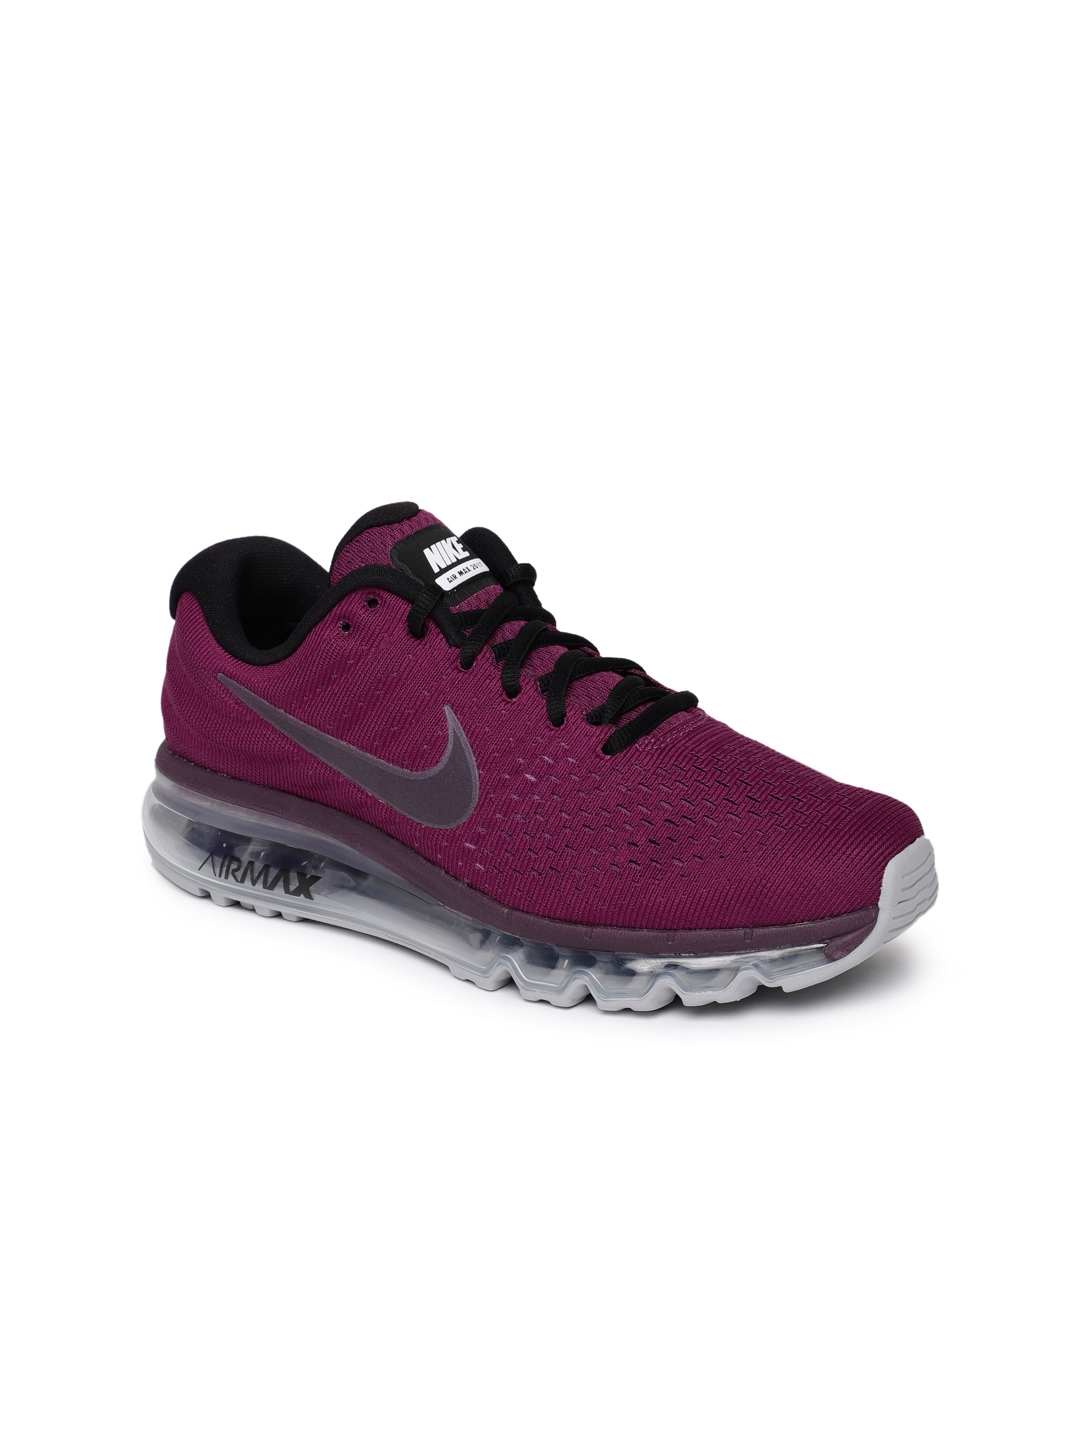 1938a051b42 Buy Nike Women Purple Air Max 2017 Running Shoes - Sports Shoes for ...